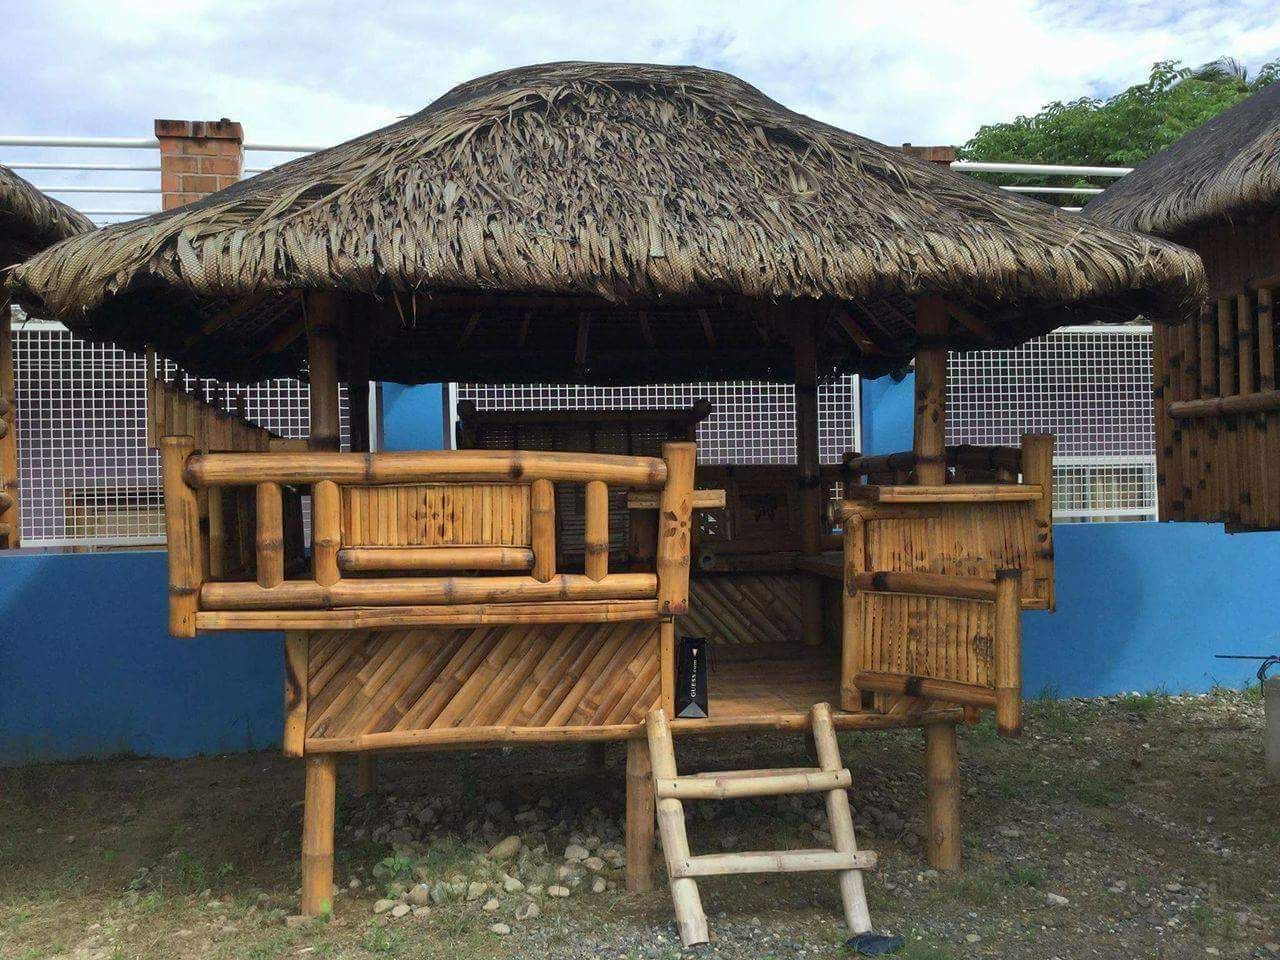 80 different types of nipa huts bahay kubo design in the philippines bahay ofw